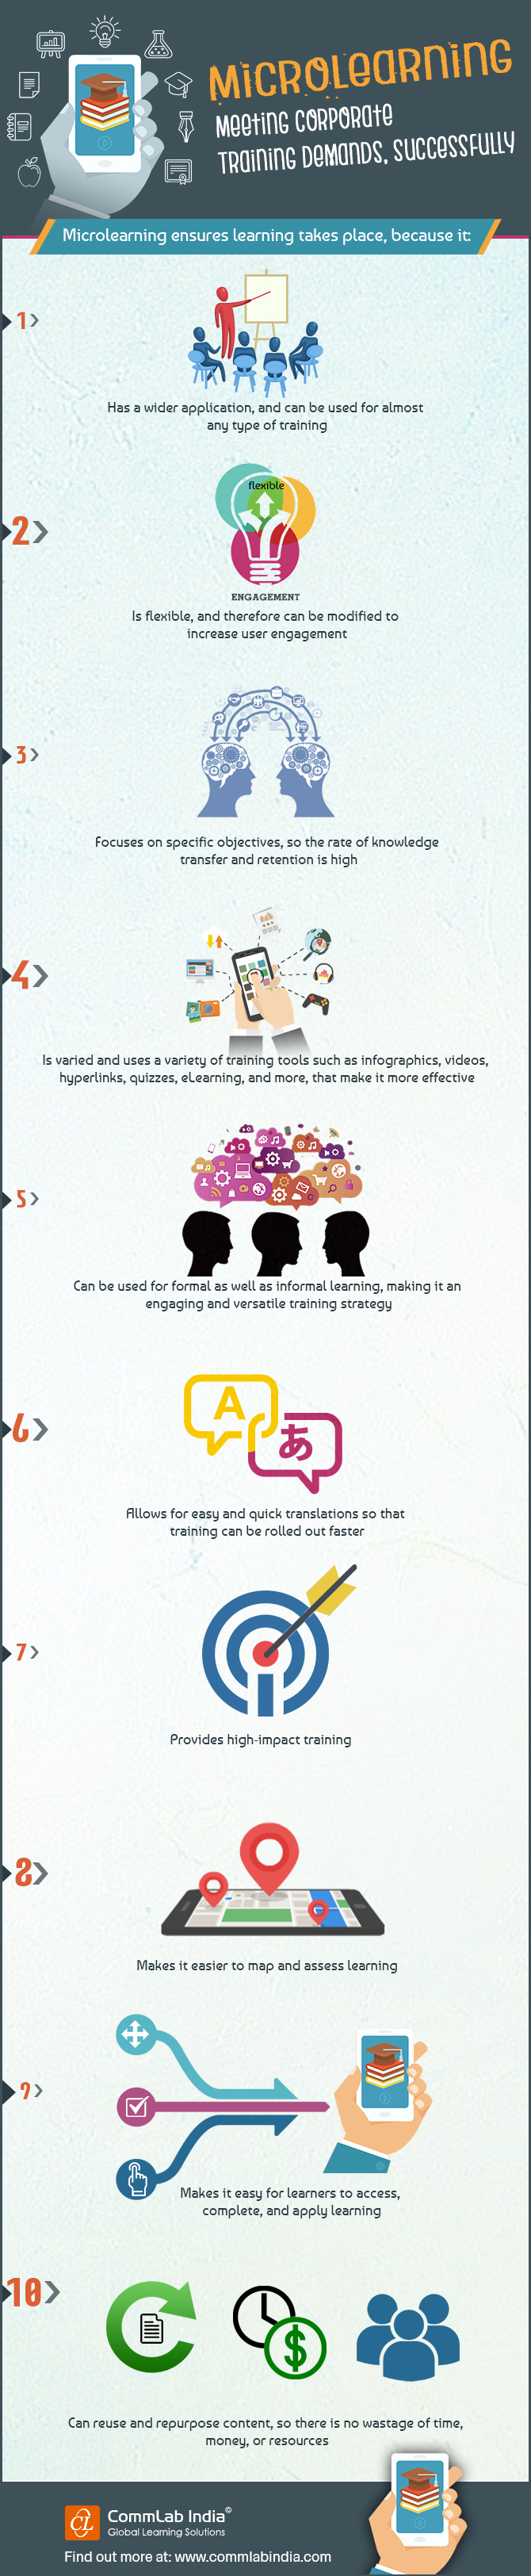 Microlearning - Meeting Corporate Training Demands, Successfully [Infographic]